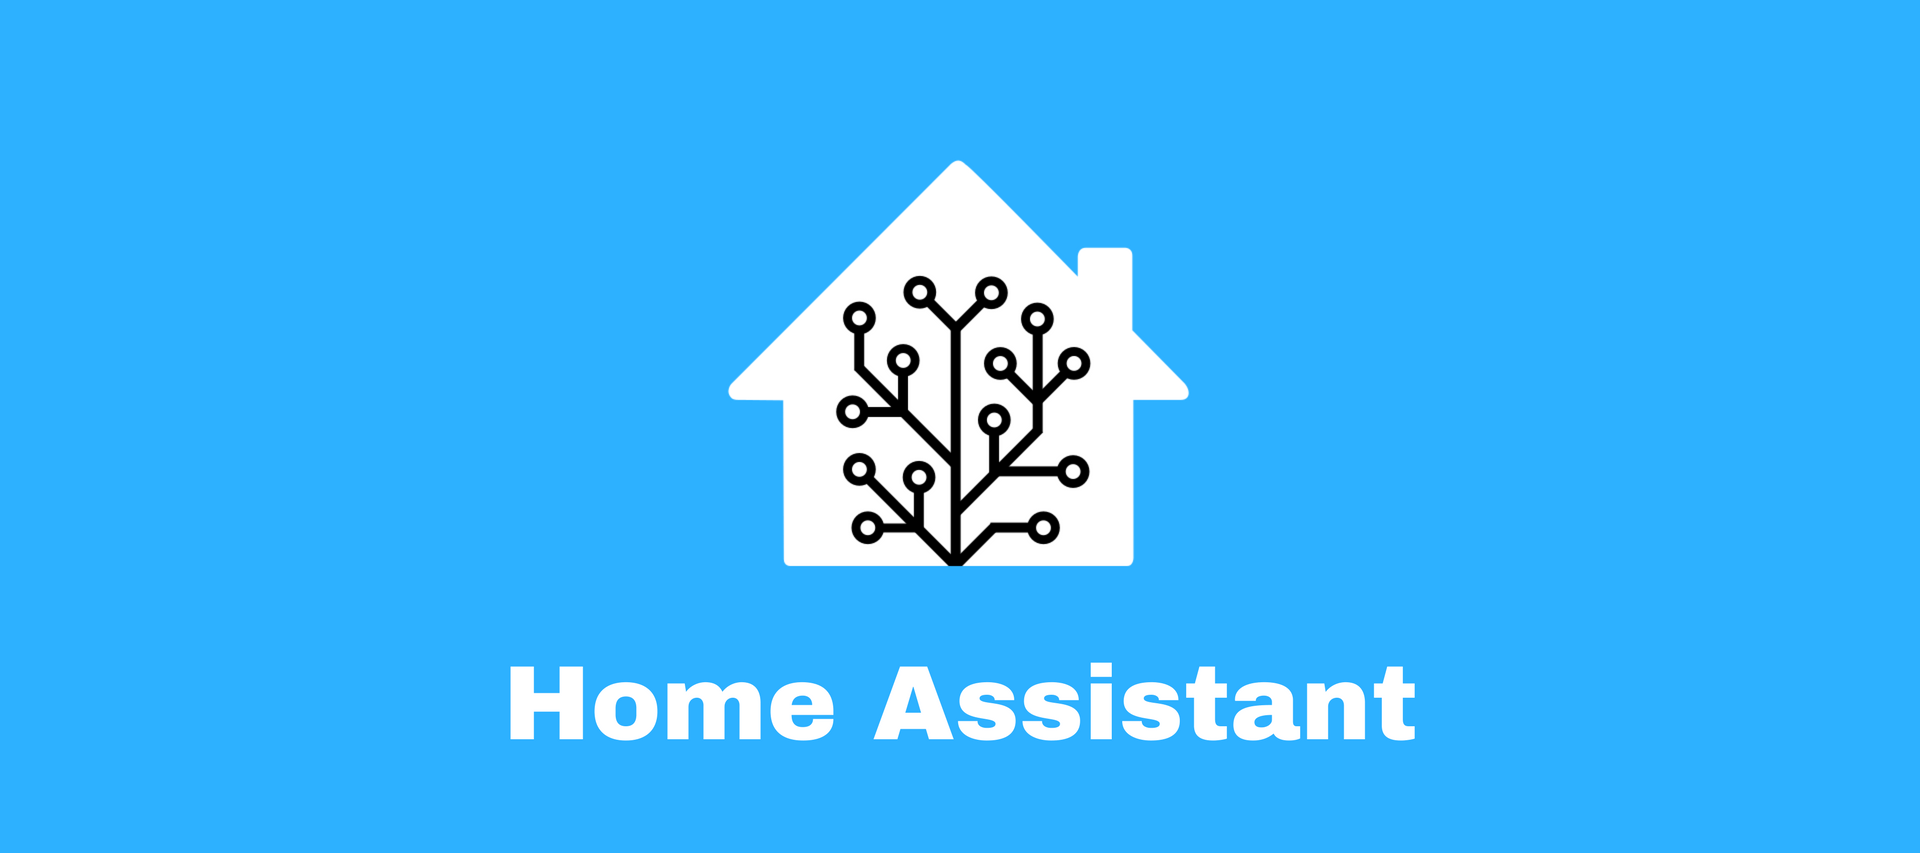 Hass.io Home Assistant